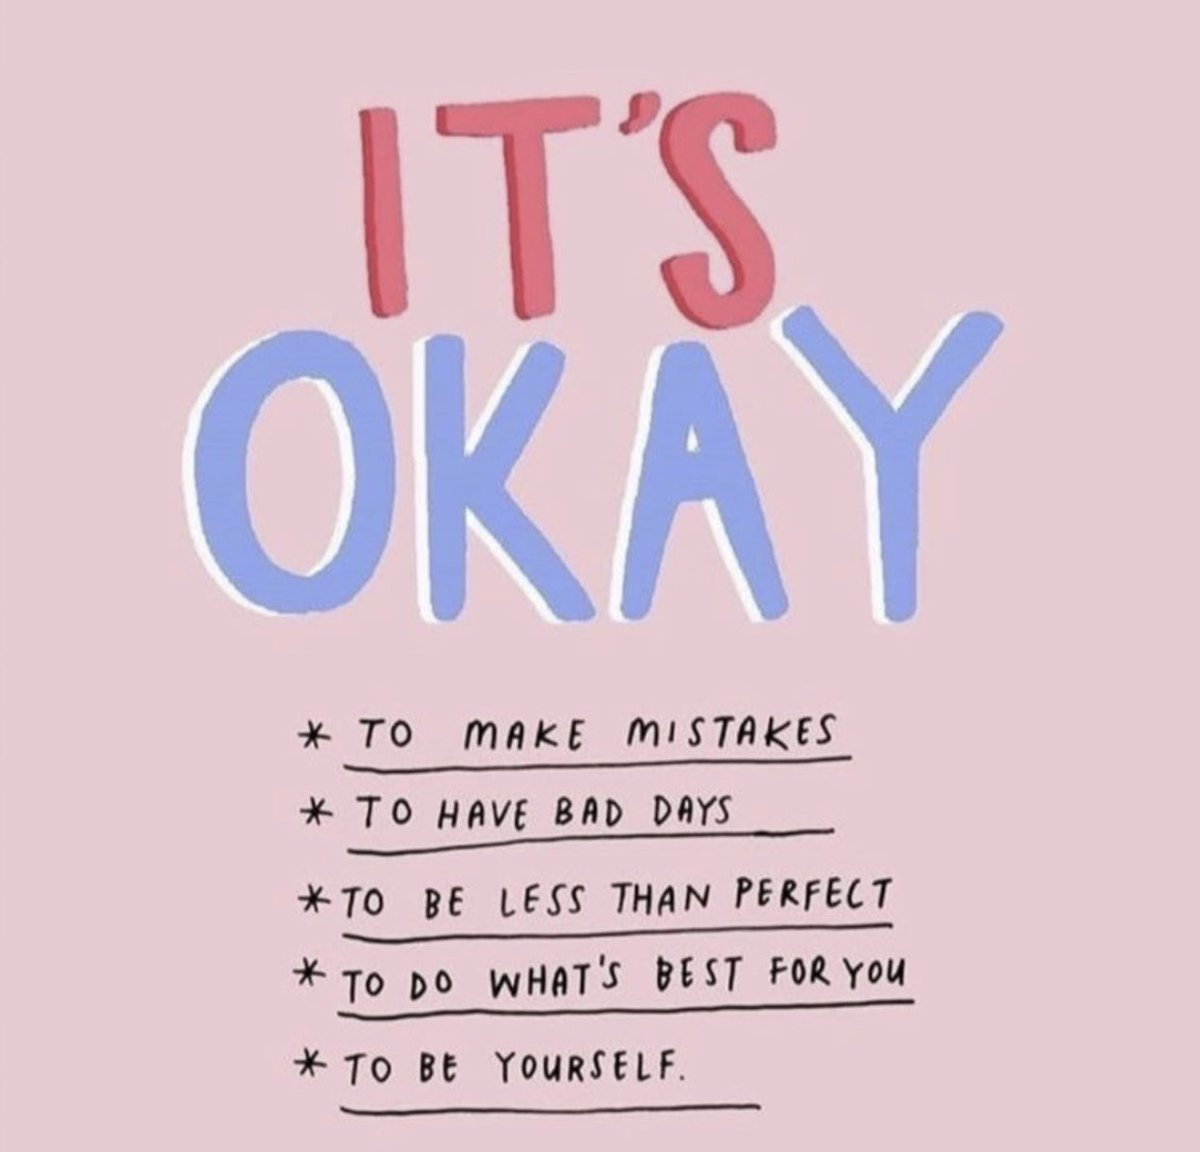 It's national mental health week. Remember it's okay to talk, remember it's okay not to feel okay, especially in these strange times #beKind https://t.co/obYzJsR7Bl